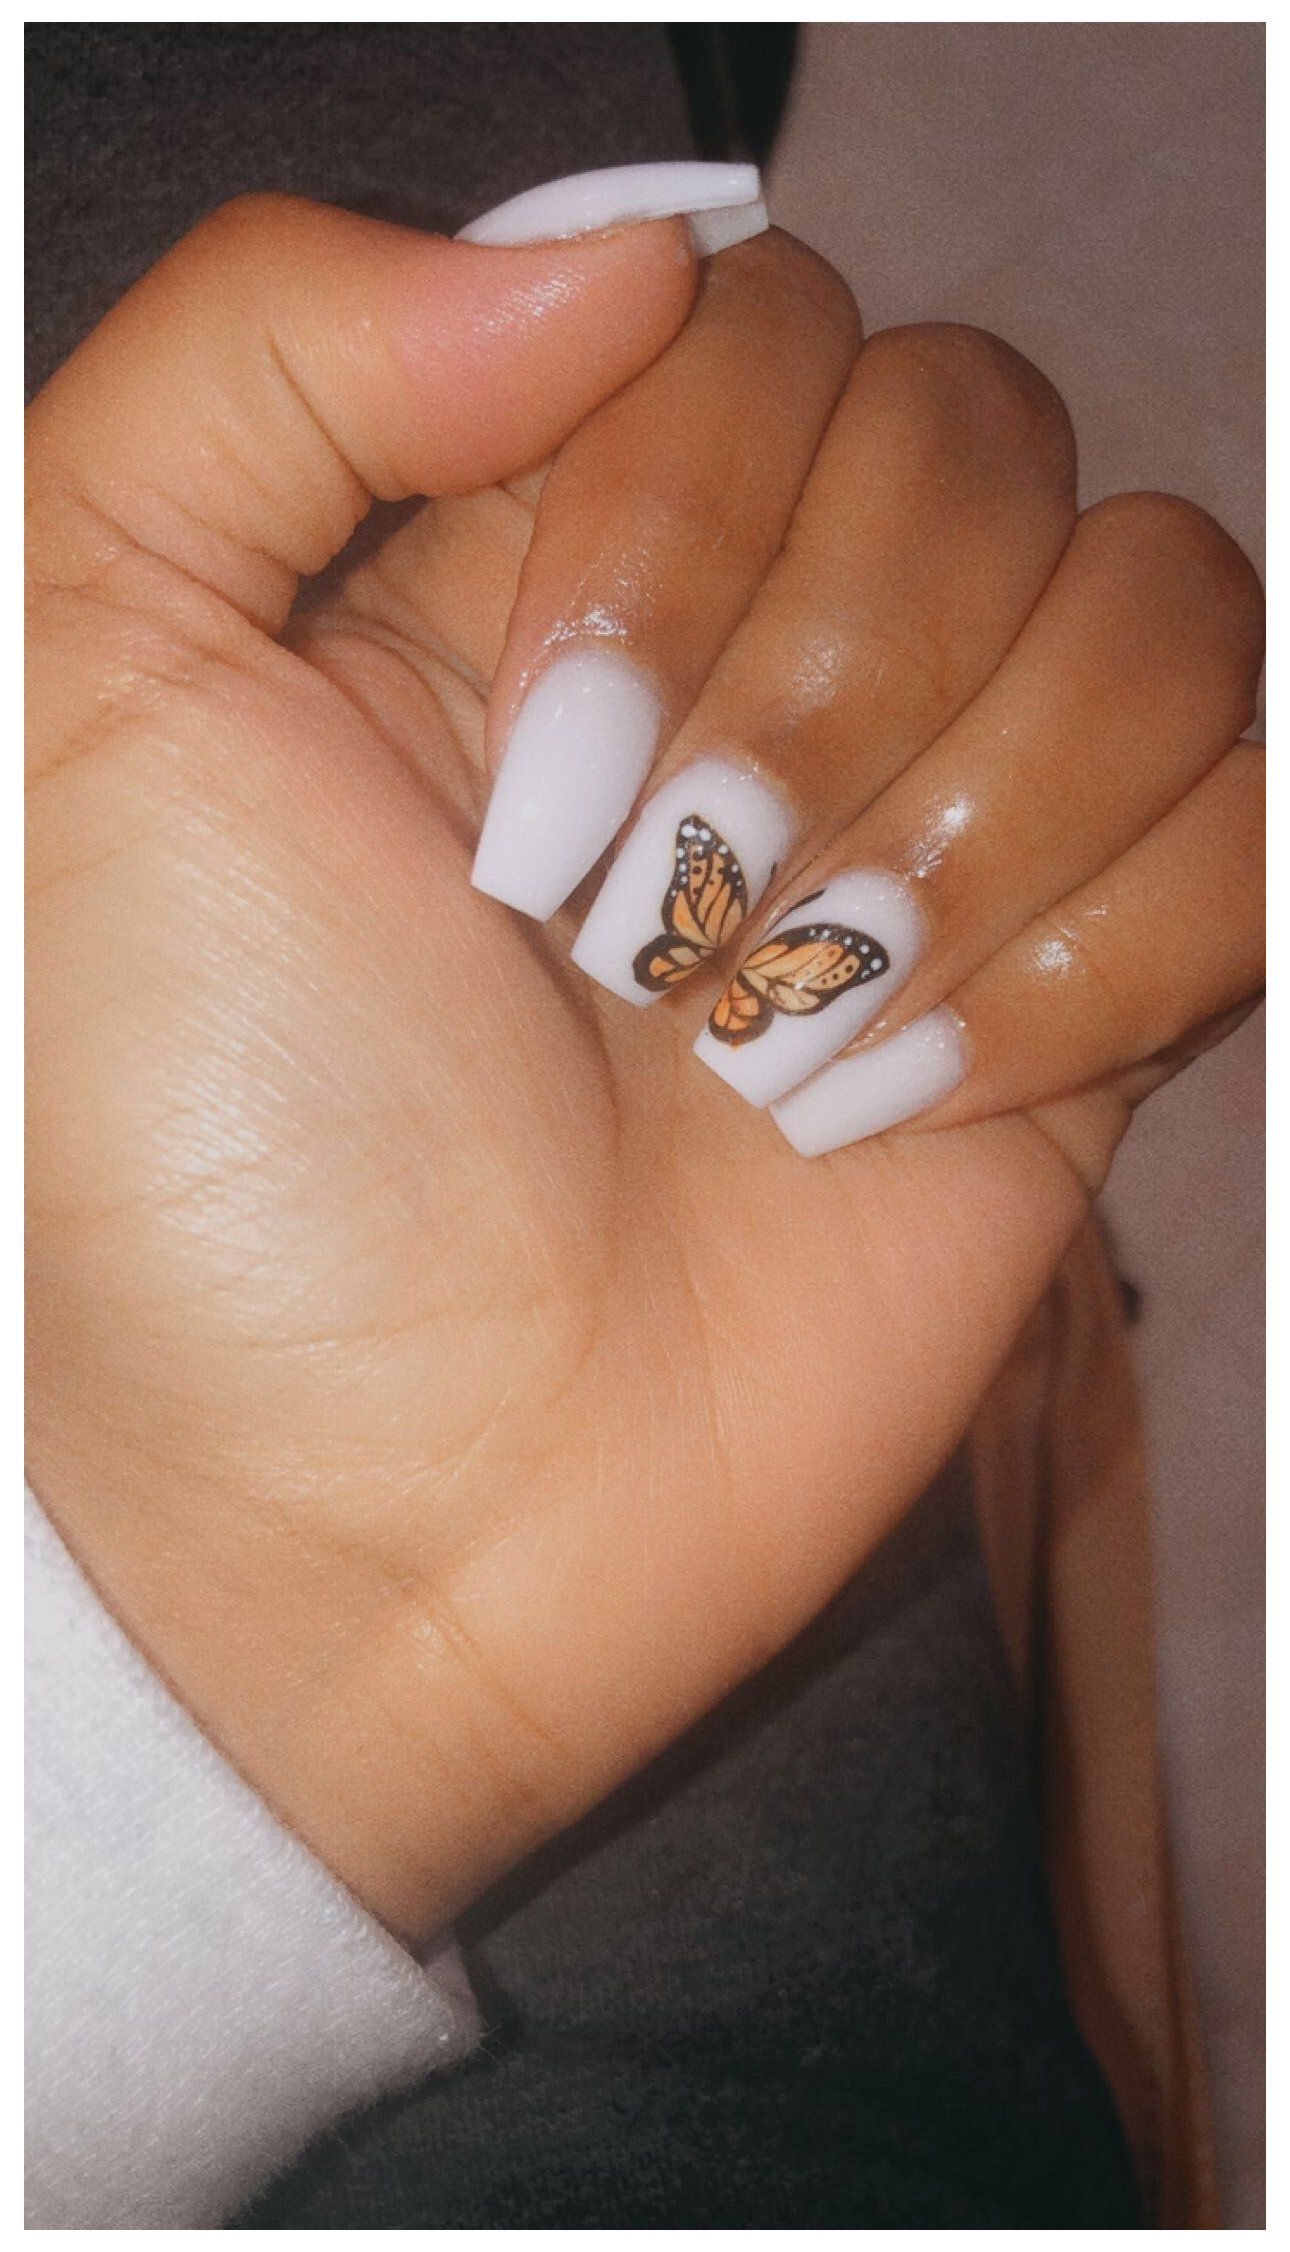 Short Acrylic Nails Designs Butterfly White Short Coffin Nails Nails Acrylic Cute N In 2020 Short Acrylic Nails Designs Ombre Acrylic Nails Summer Acrylic Nails